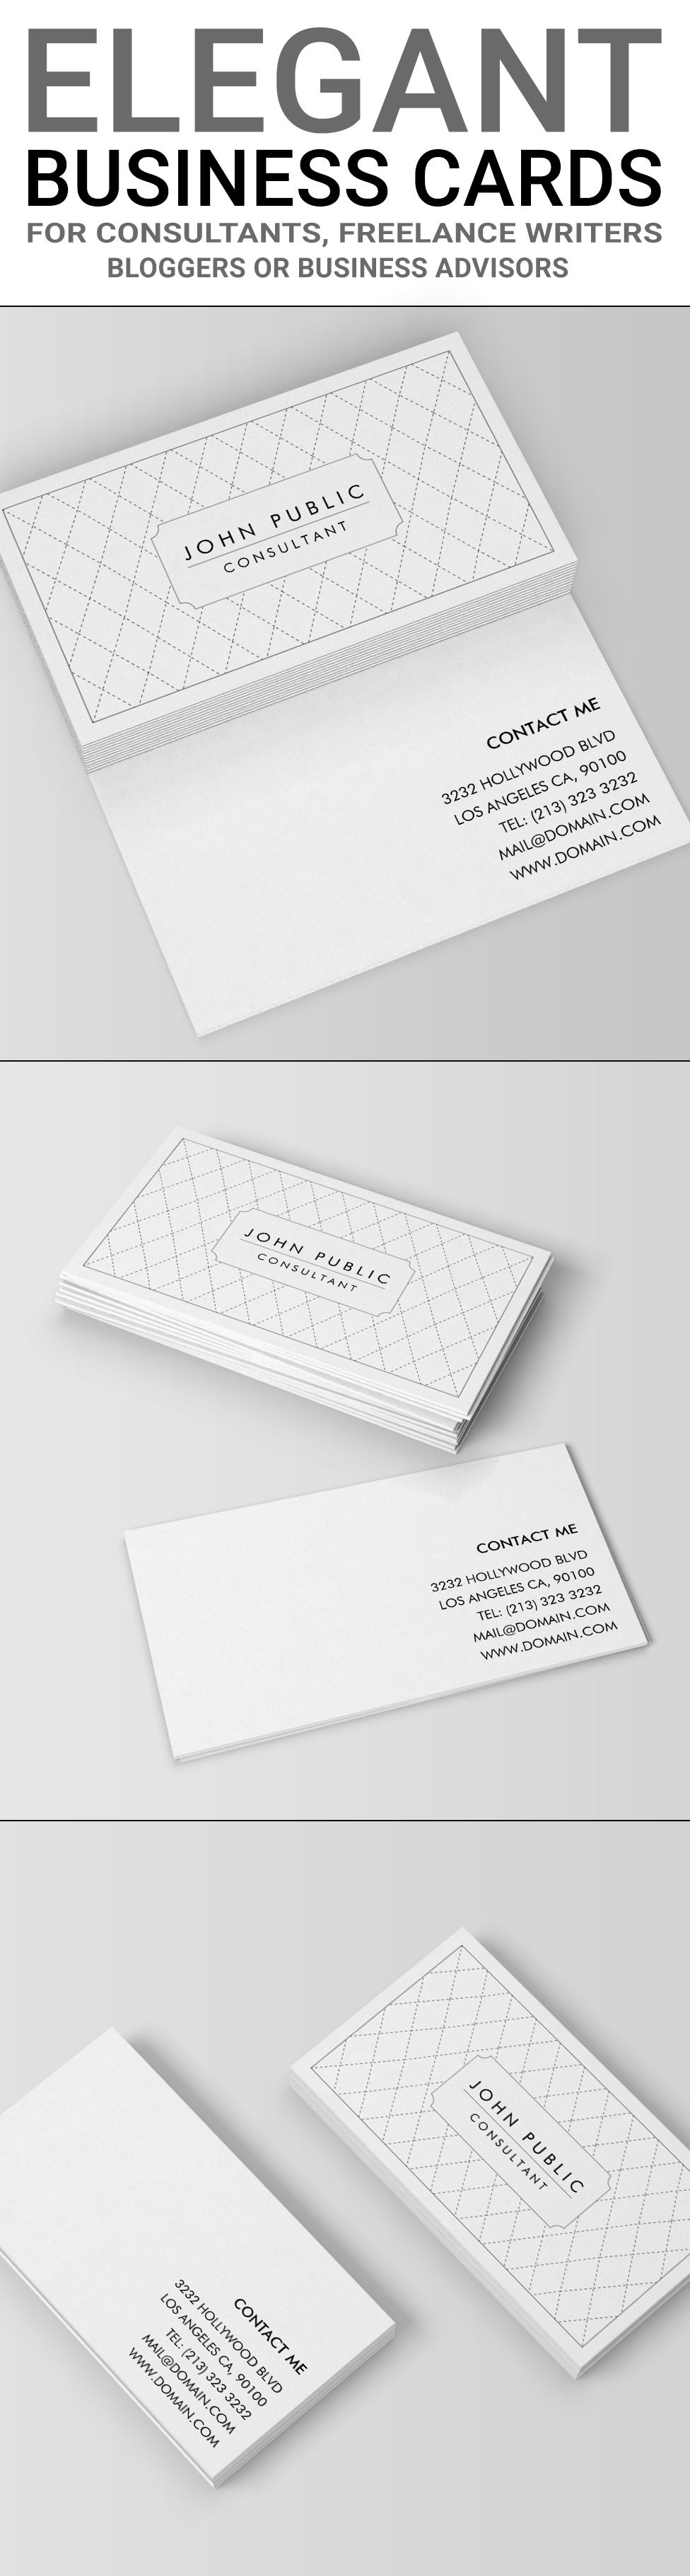 Biziwizid gives you the opportunity to design a business card of biziwizid gives you the opportunity to design a business card of your choice design business cards online pinterest reheart Gallery